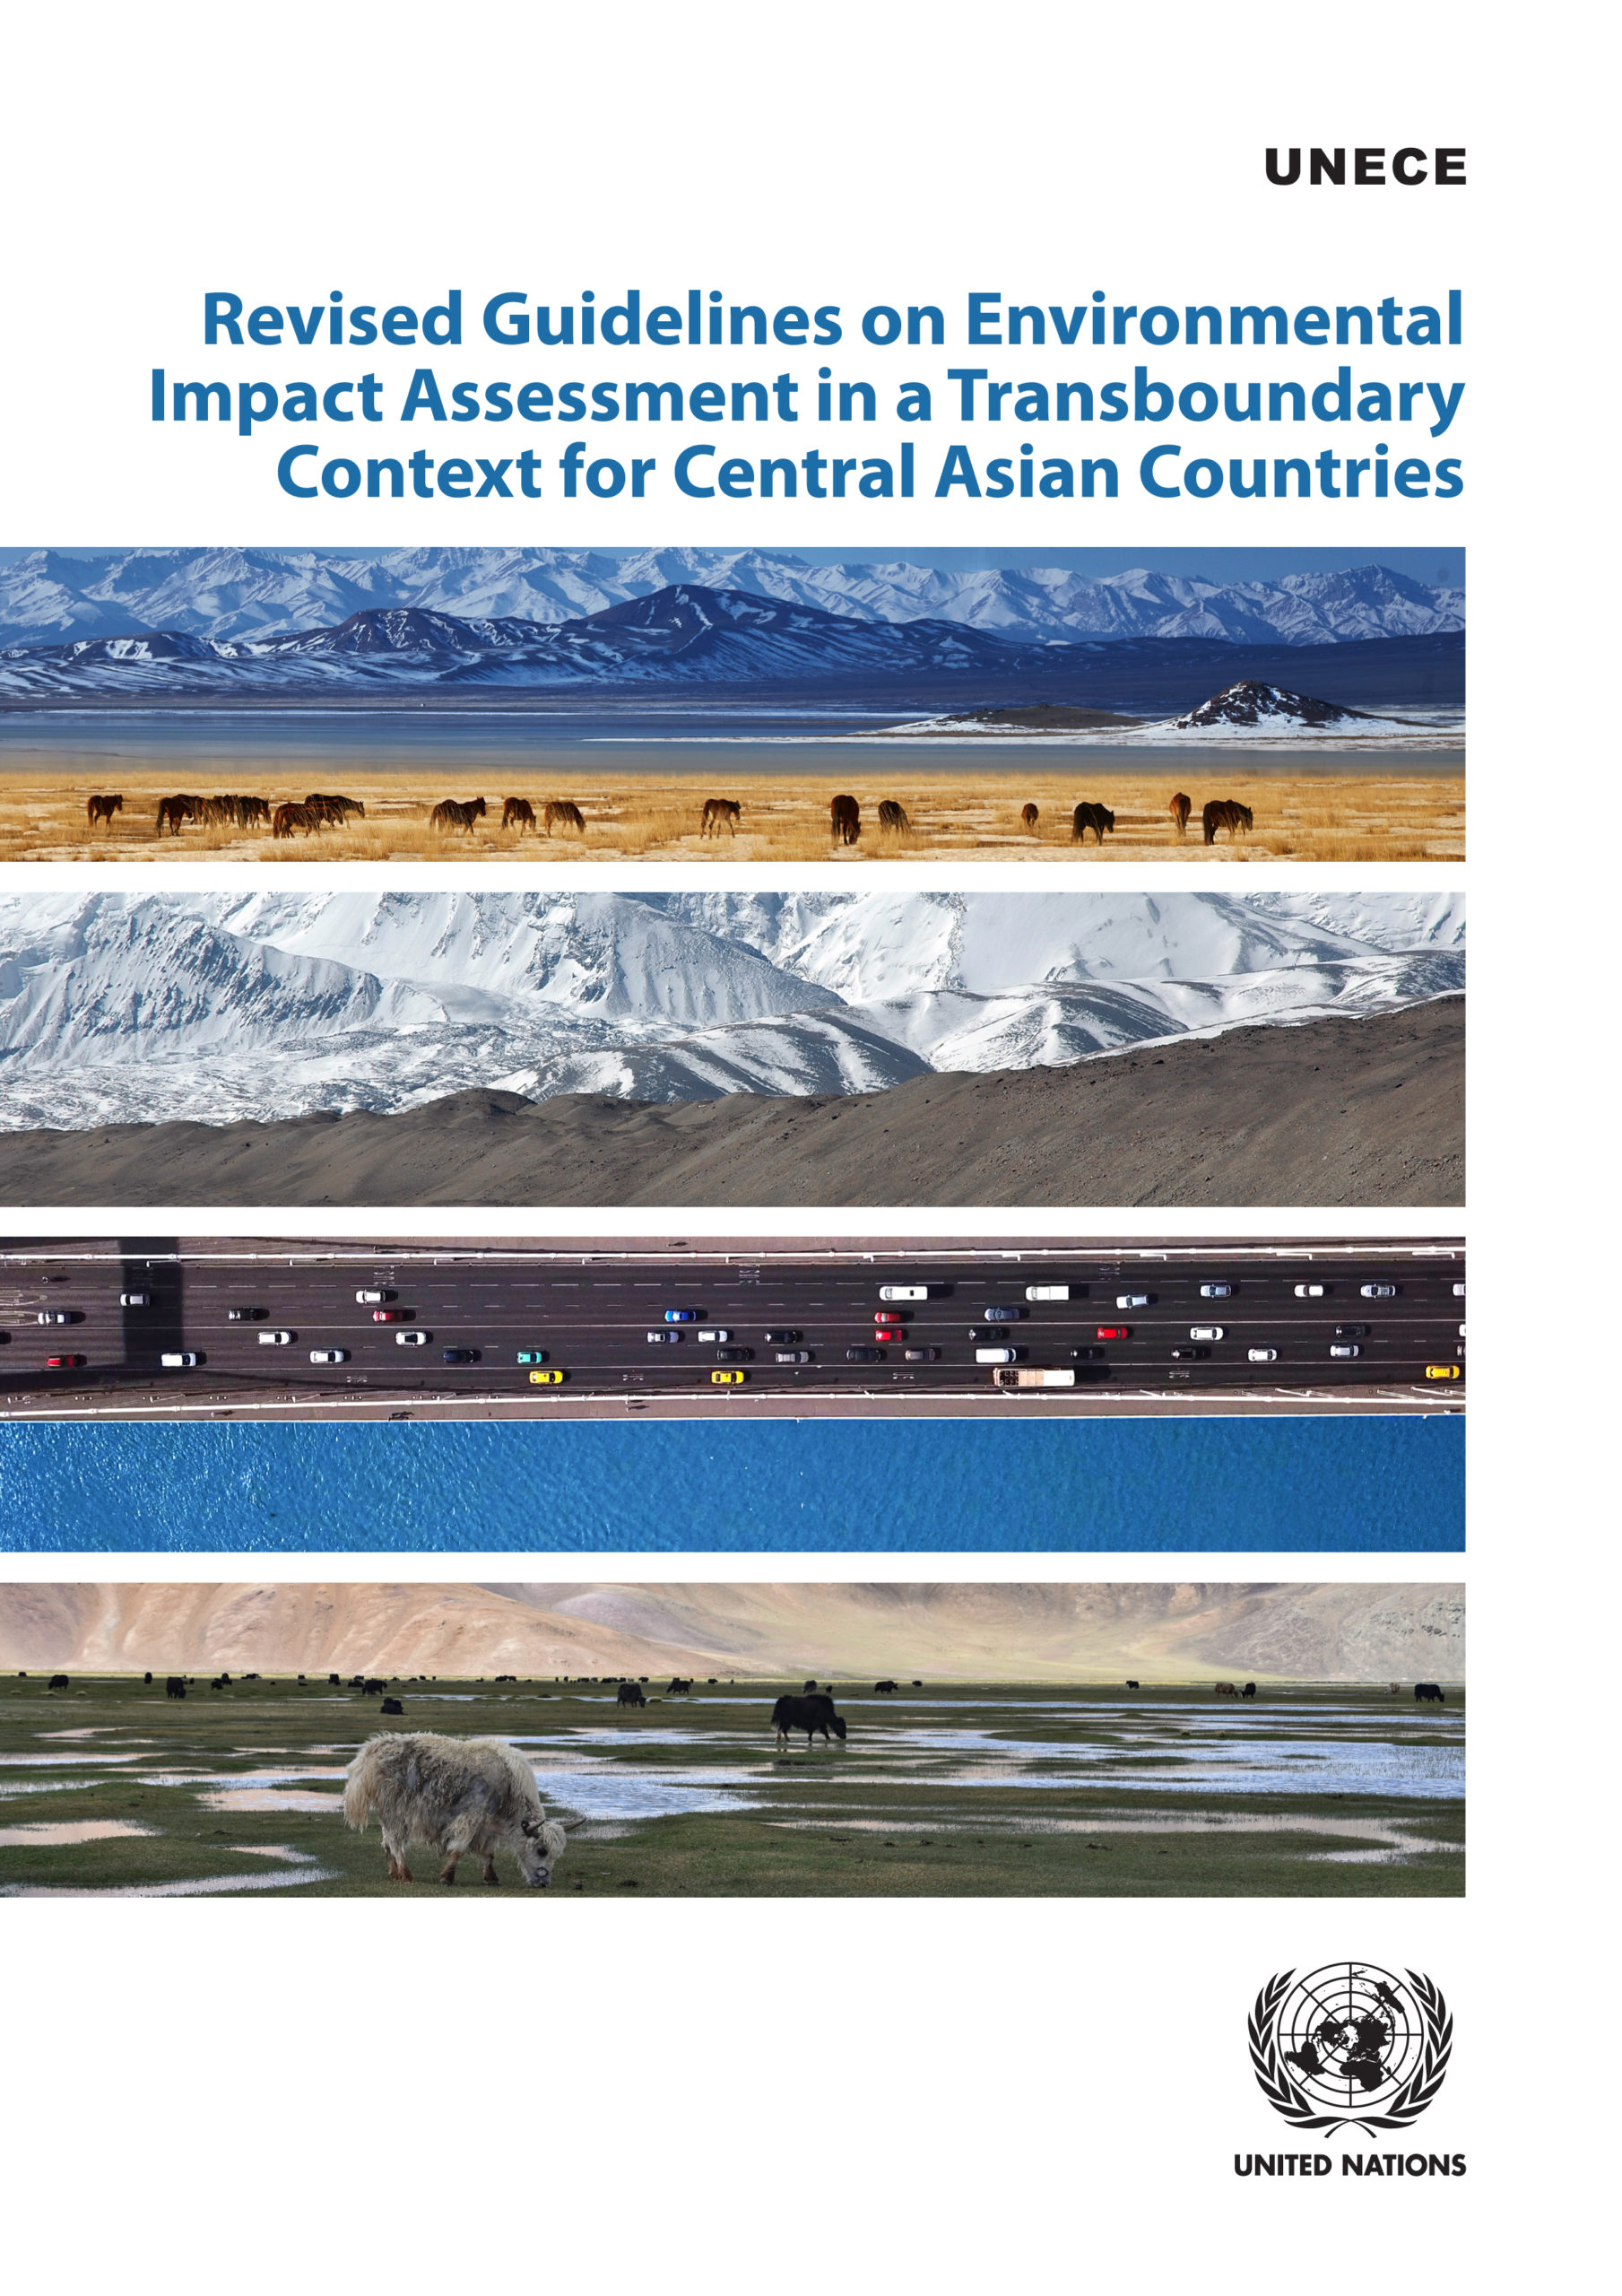 Revised Guidelines on Environmental Impact Assessment in a Transboundary Context for Central Asian Countries